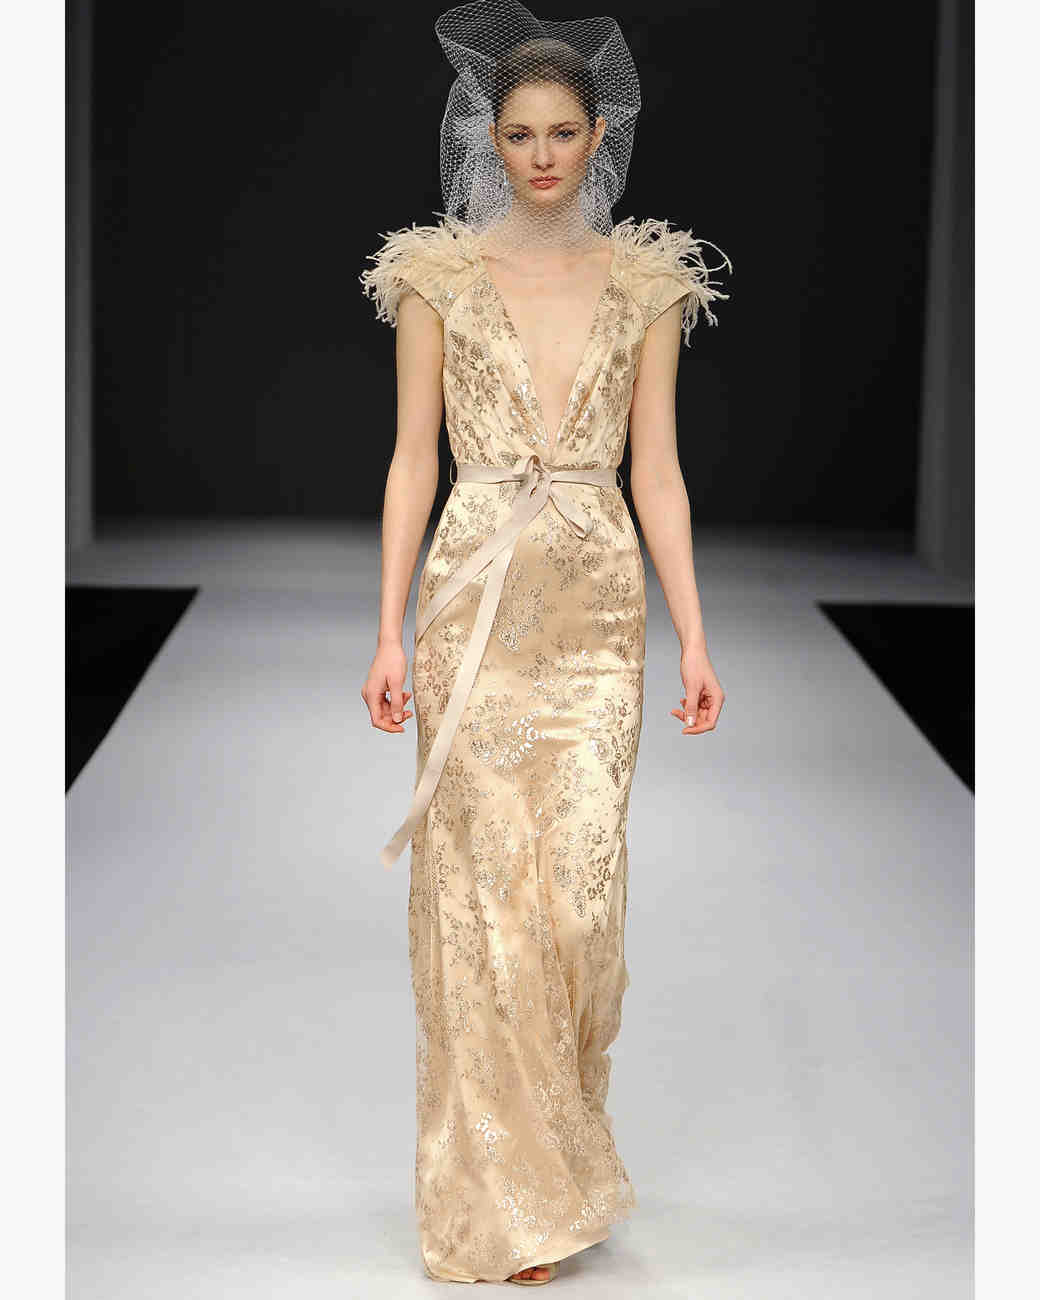 Gold Gowns Wedding: Gold Wedding Dresses, Fall 2012 Bridal Fashion Week